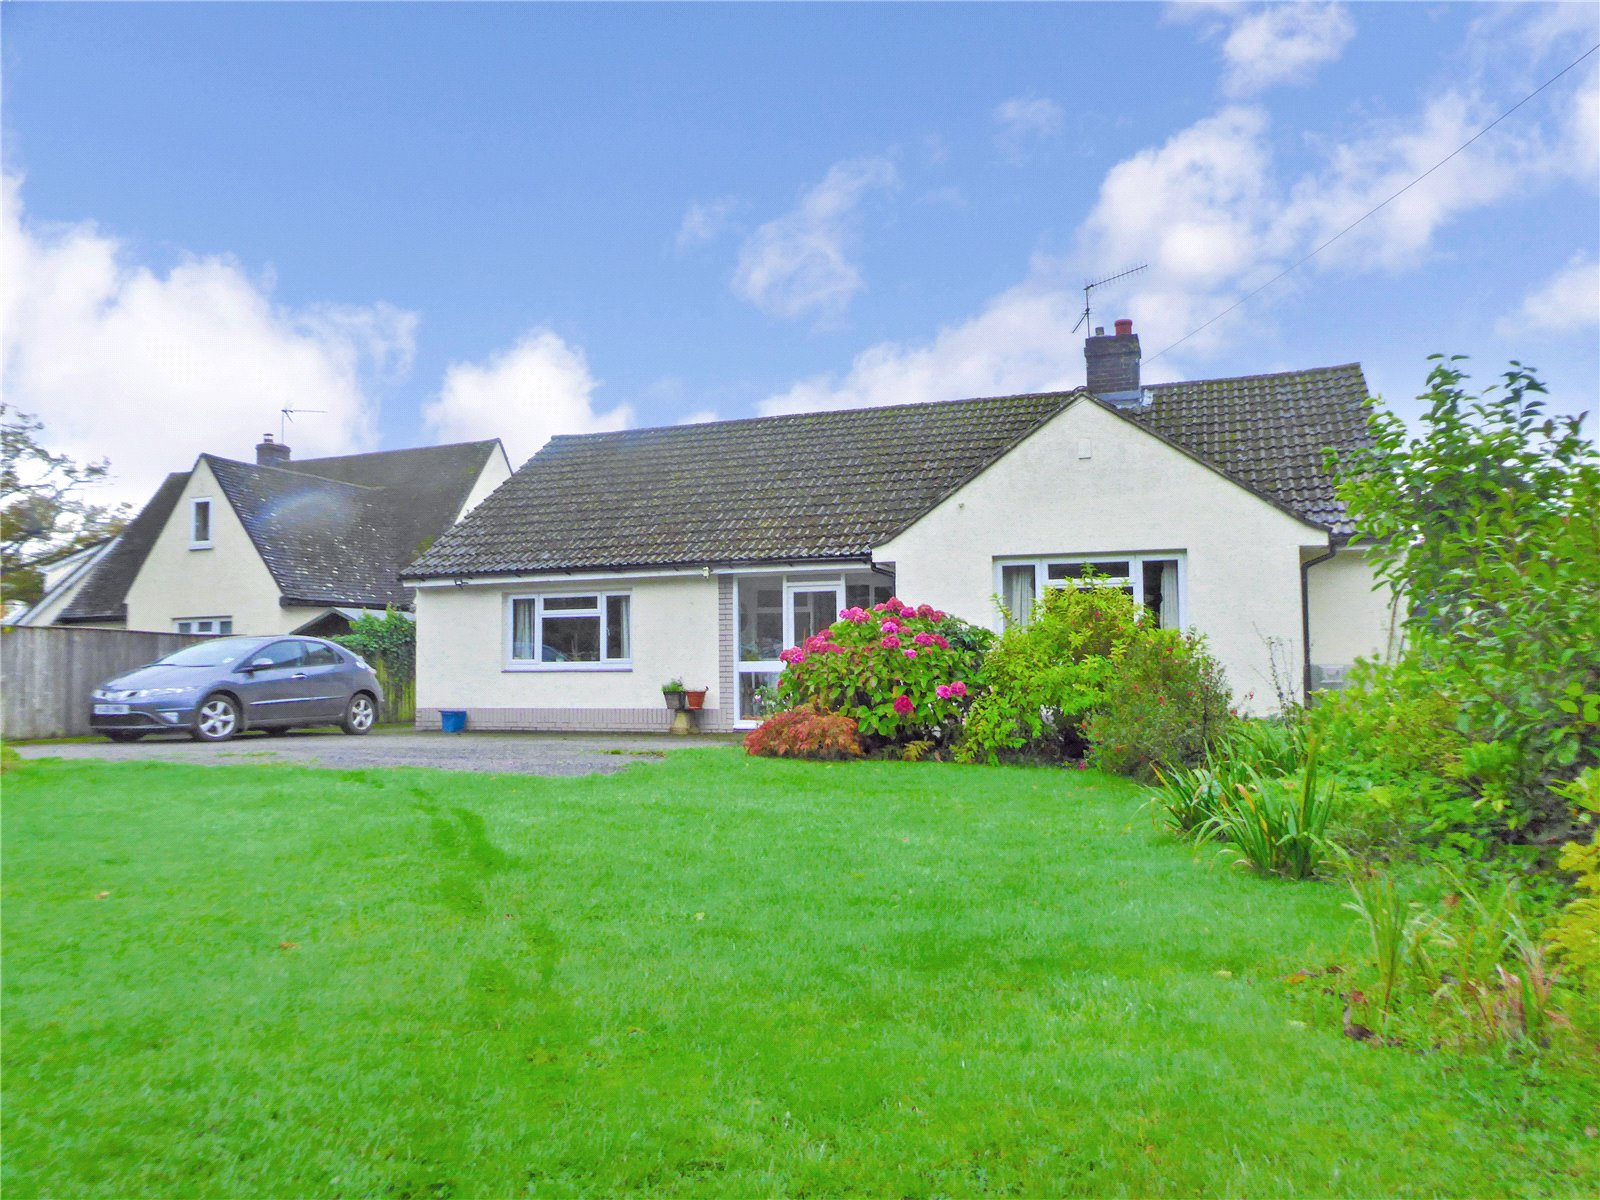 3 Bedrooms Bungalow for sale in Tredunnock Tredunnock Monmouthshire NP15